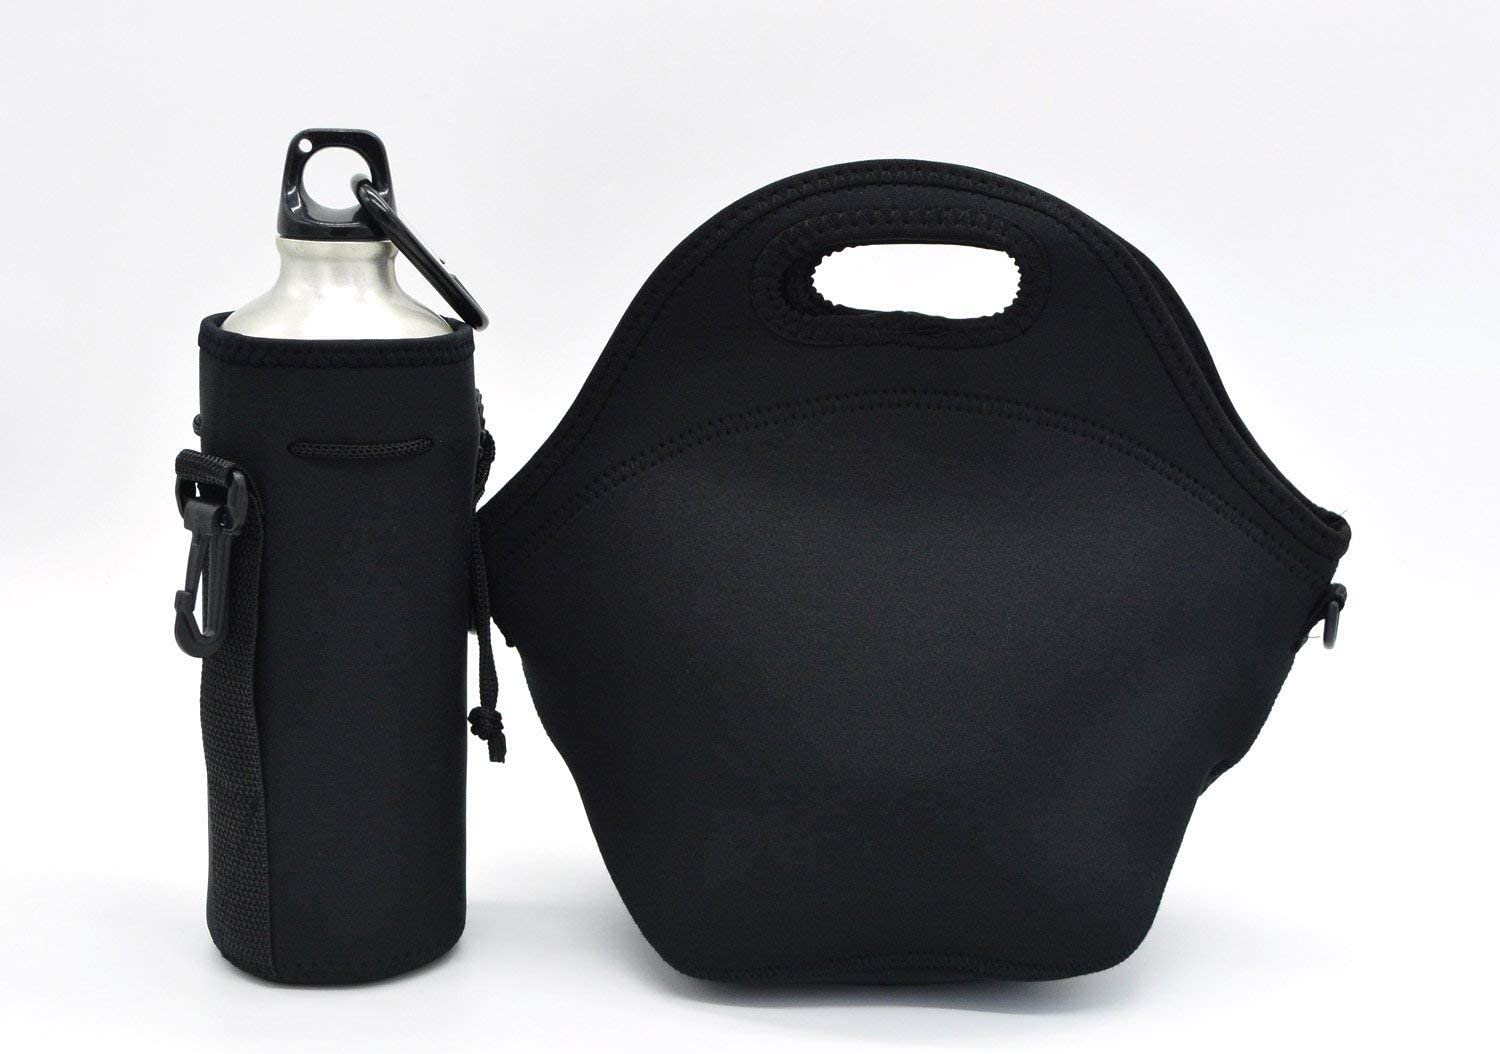 Neoprene Lunch Tote,Picnic Bag Food Insulated Waterproof Lunch Bags For Men, Women, Adults, Kids, Girls. Reusable, Washable, Water-proof Foldable, Light, Zipper With Strong shoulder strap (BLACK)